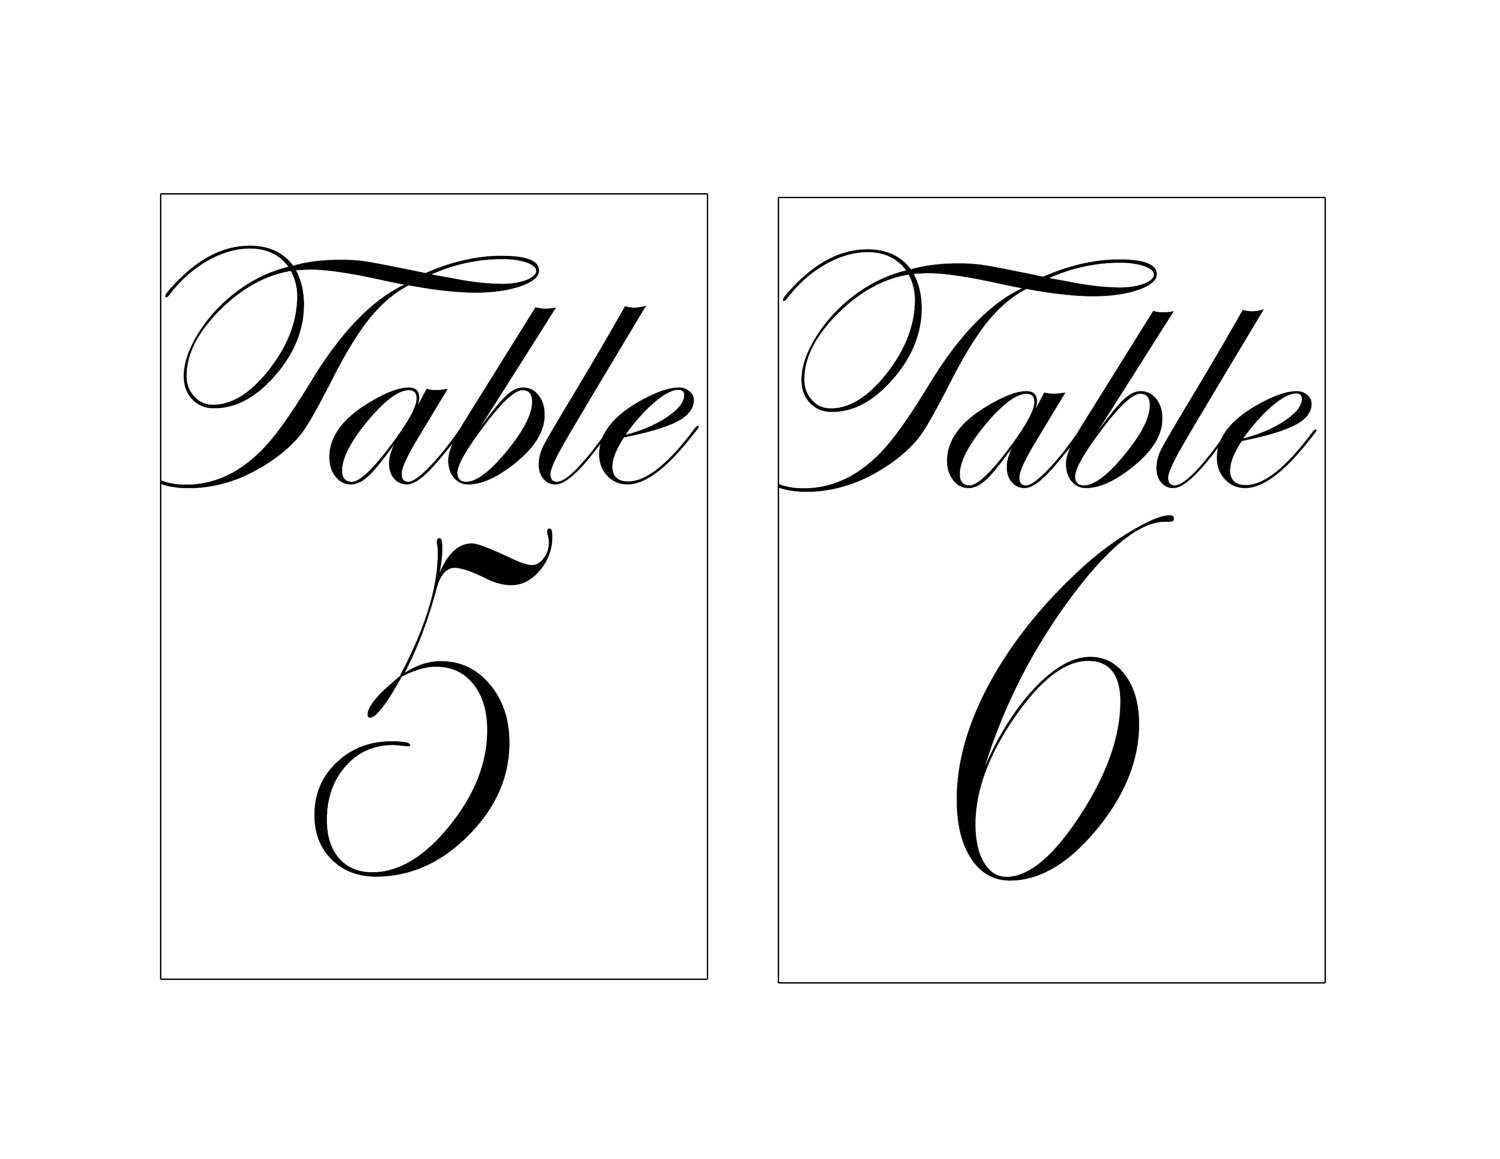 005 Table Number Template Word Il Fullxfull Awesome Ideas Regarding Table Number Cards Template